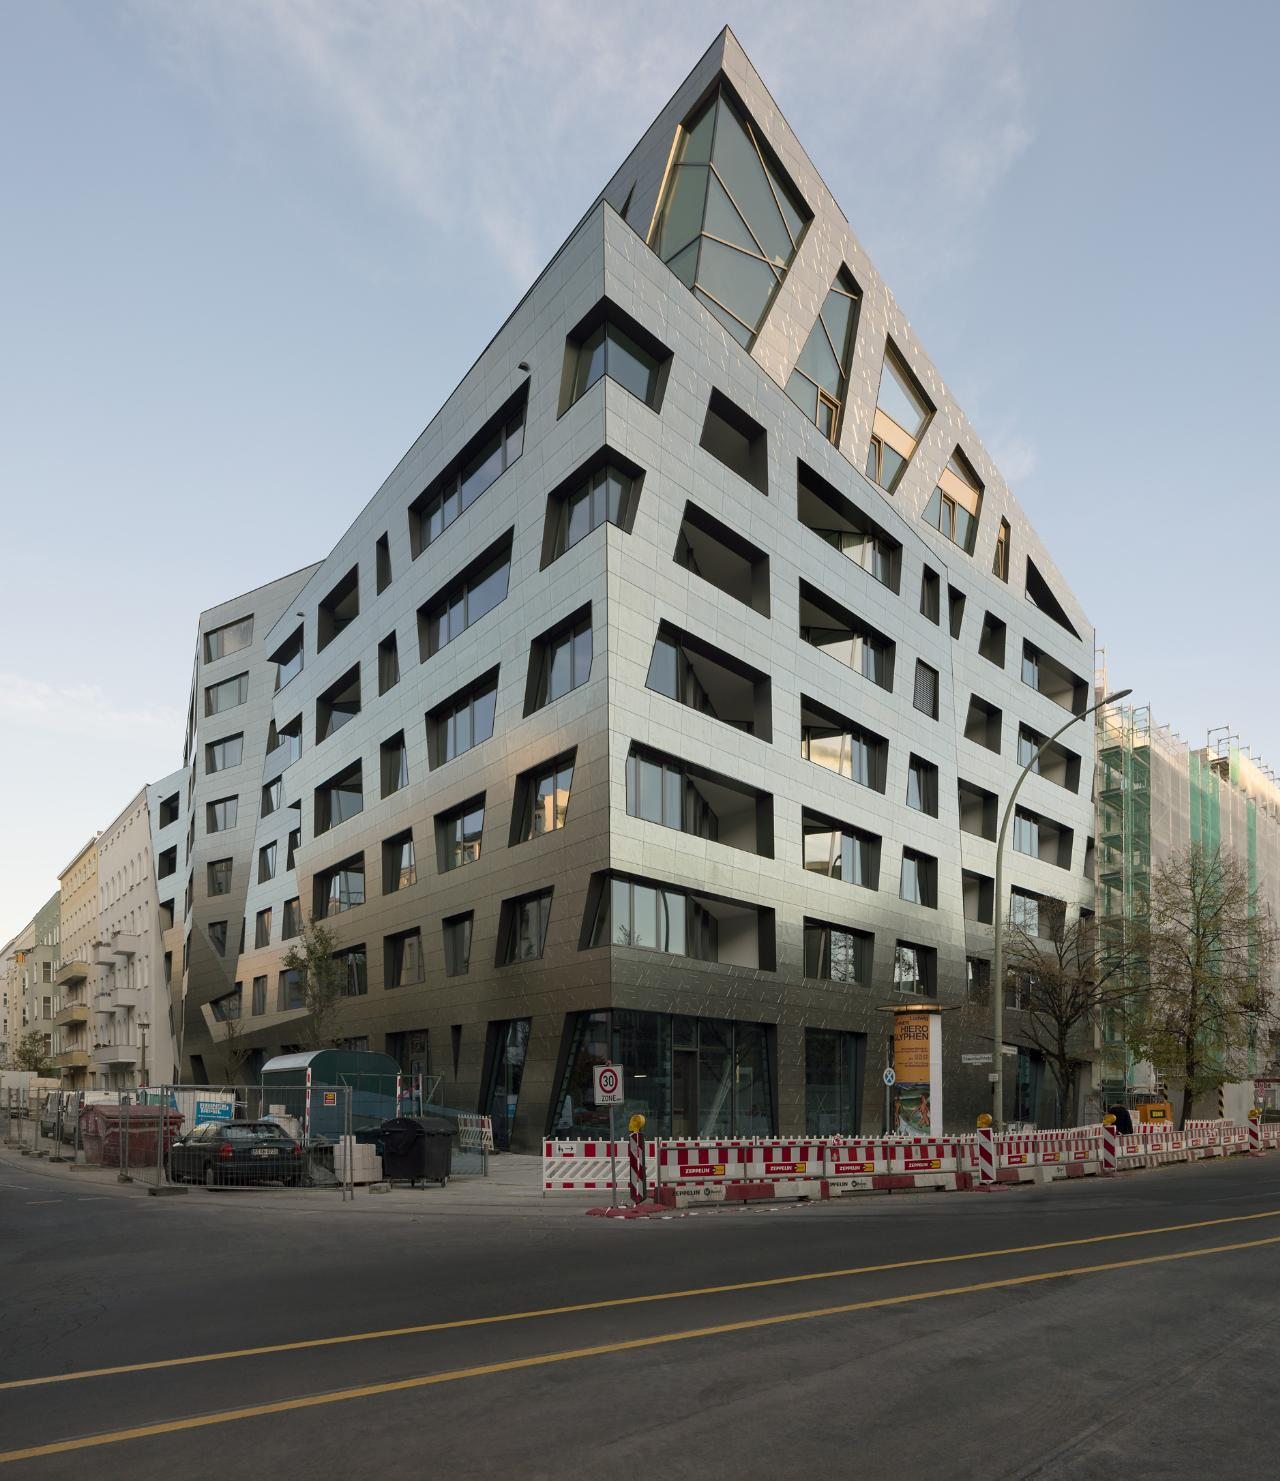 Technology helped Studio Libeskind balance strict building codes and a desire to create individually designed spaces in the Sapphire apartment building in Berlin.